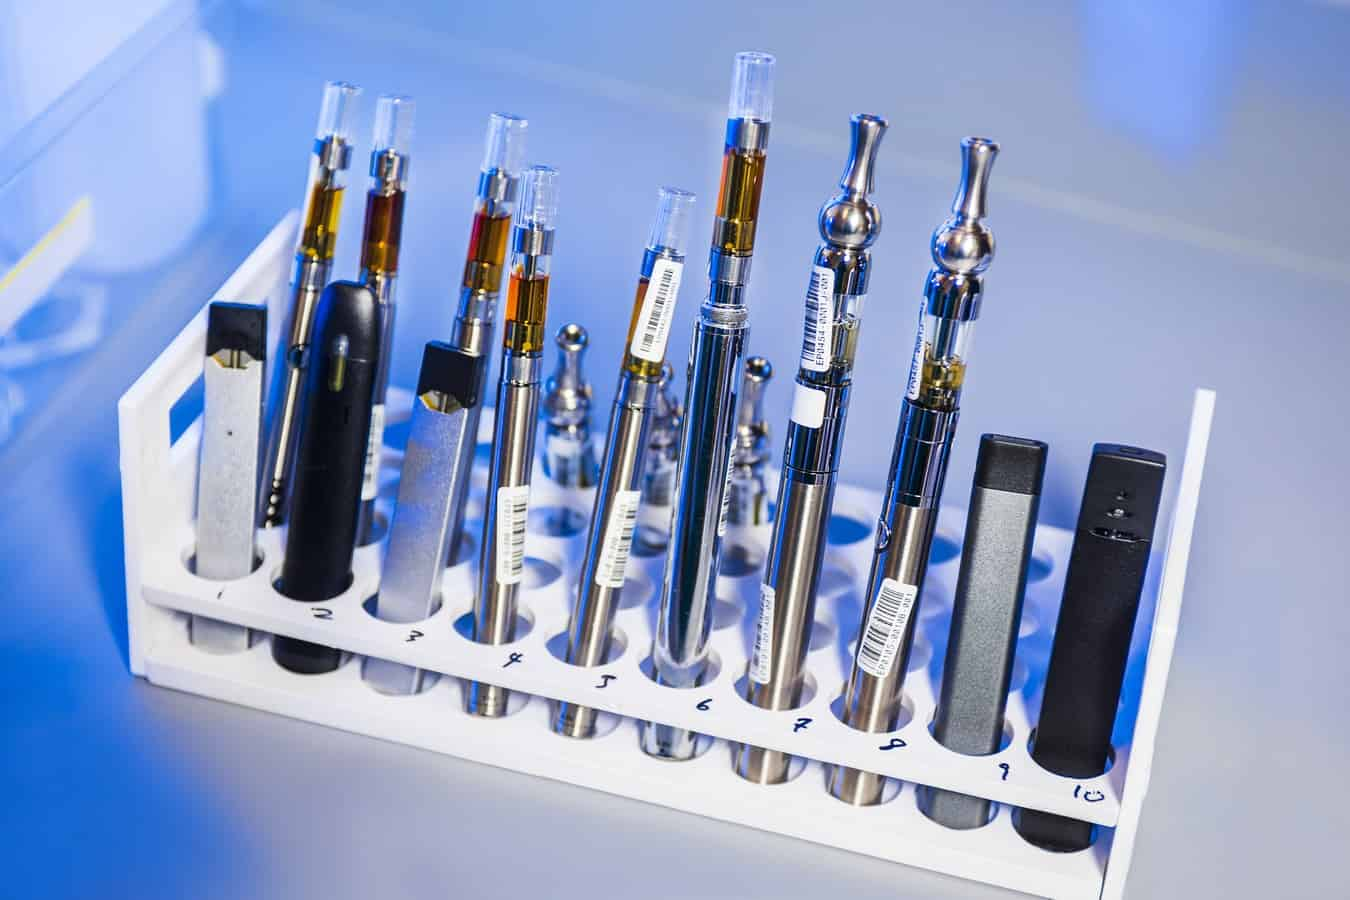 E-CIGARETTE-INDUCED PULMONARY INFLAMMATION